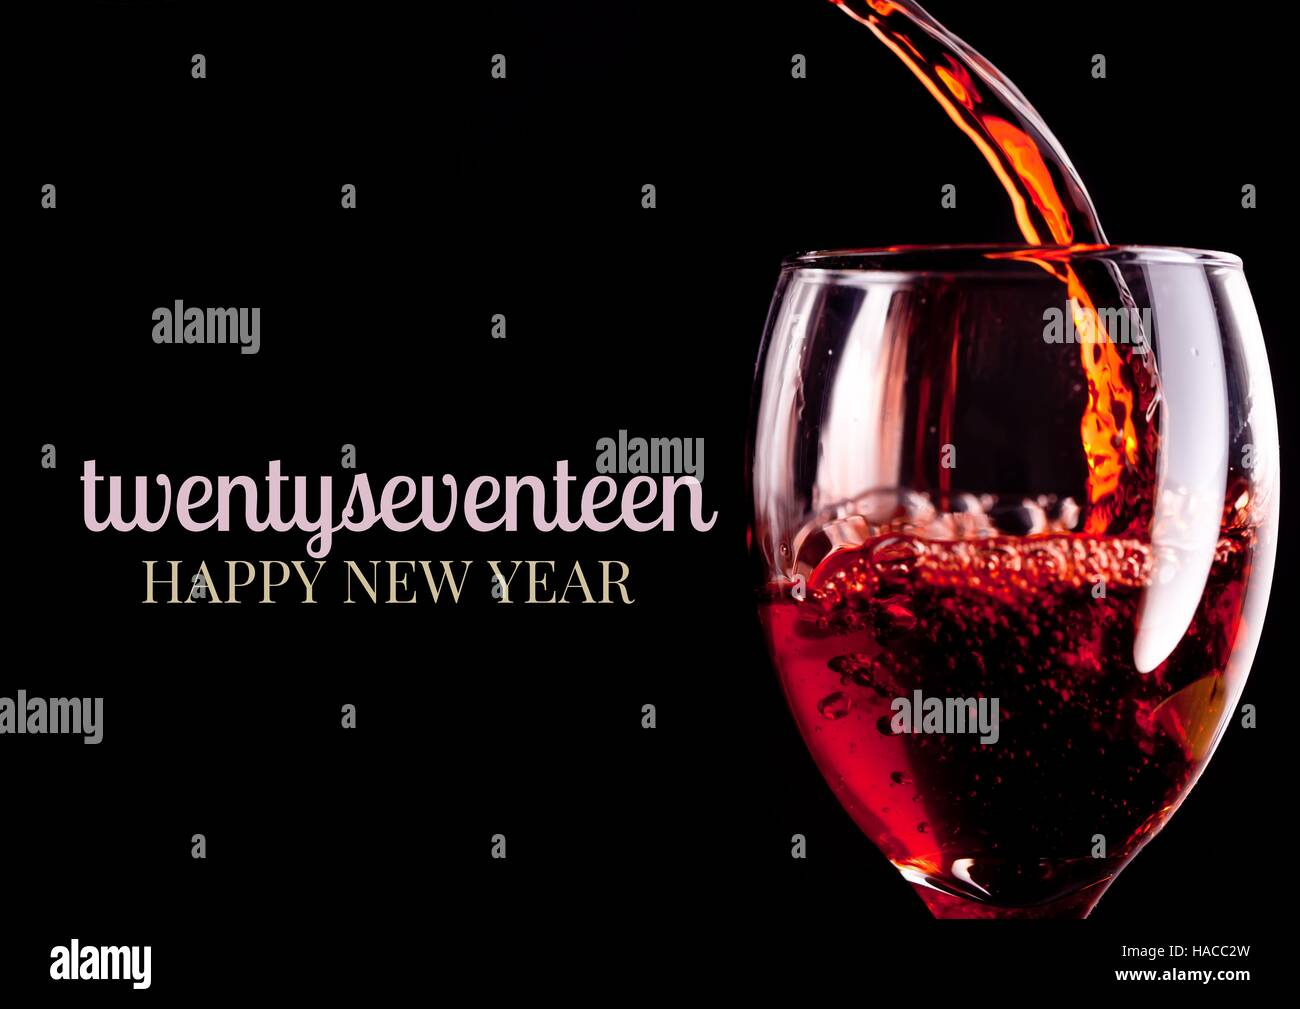 close up of 2017 happy new year wishes with red wine glass